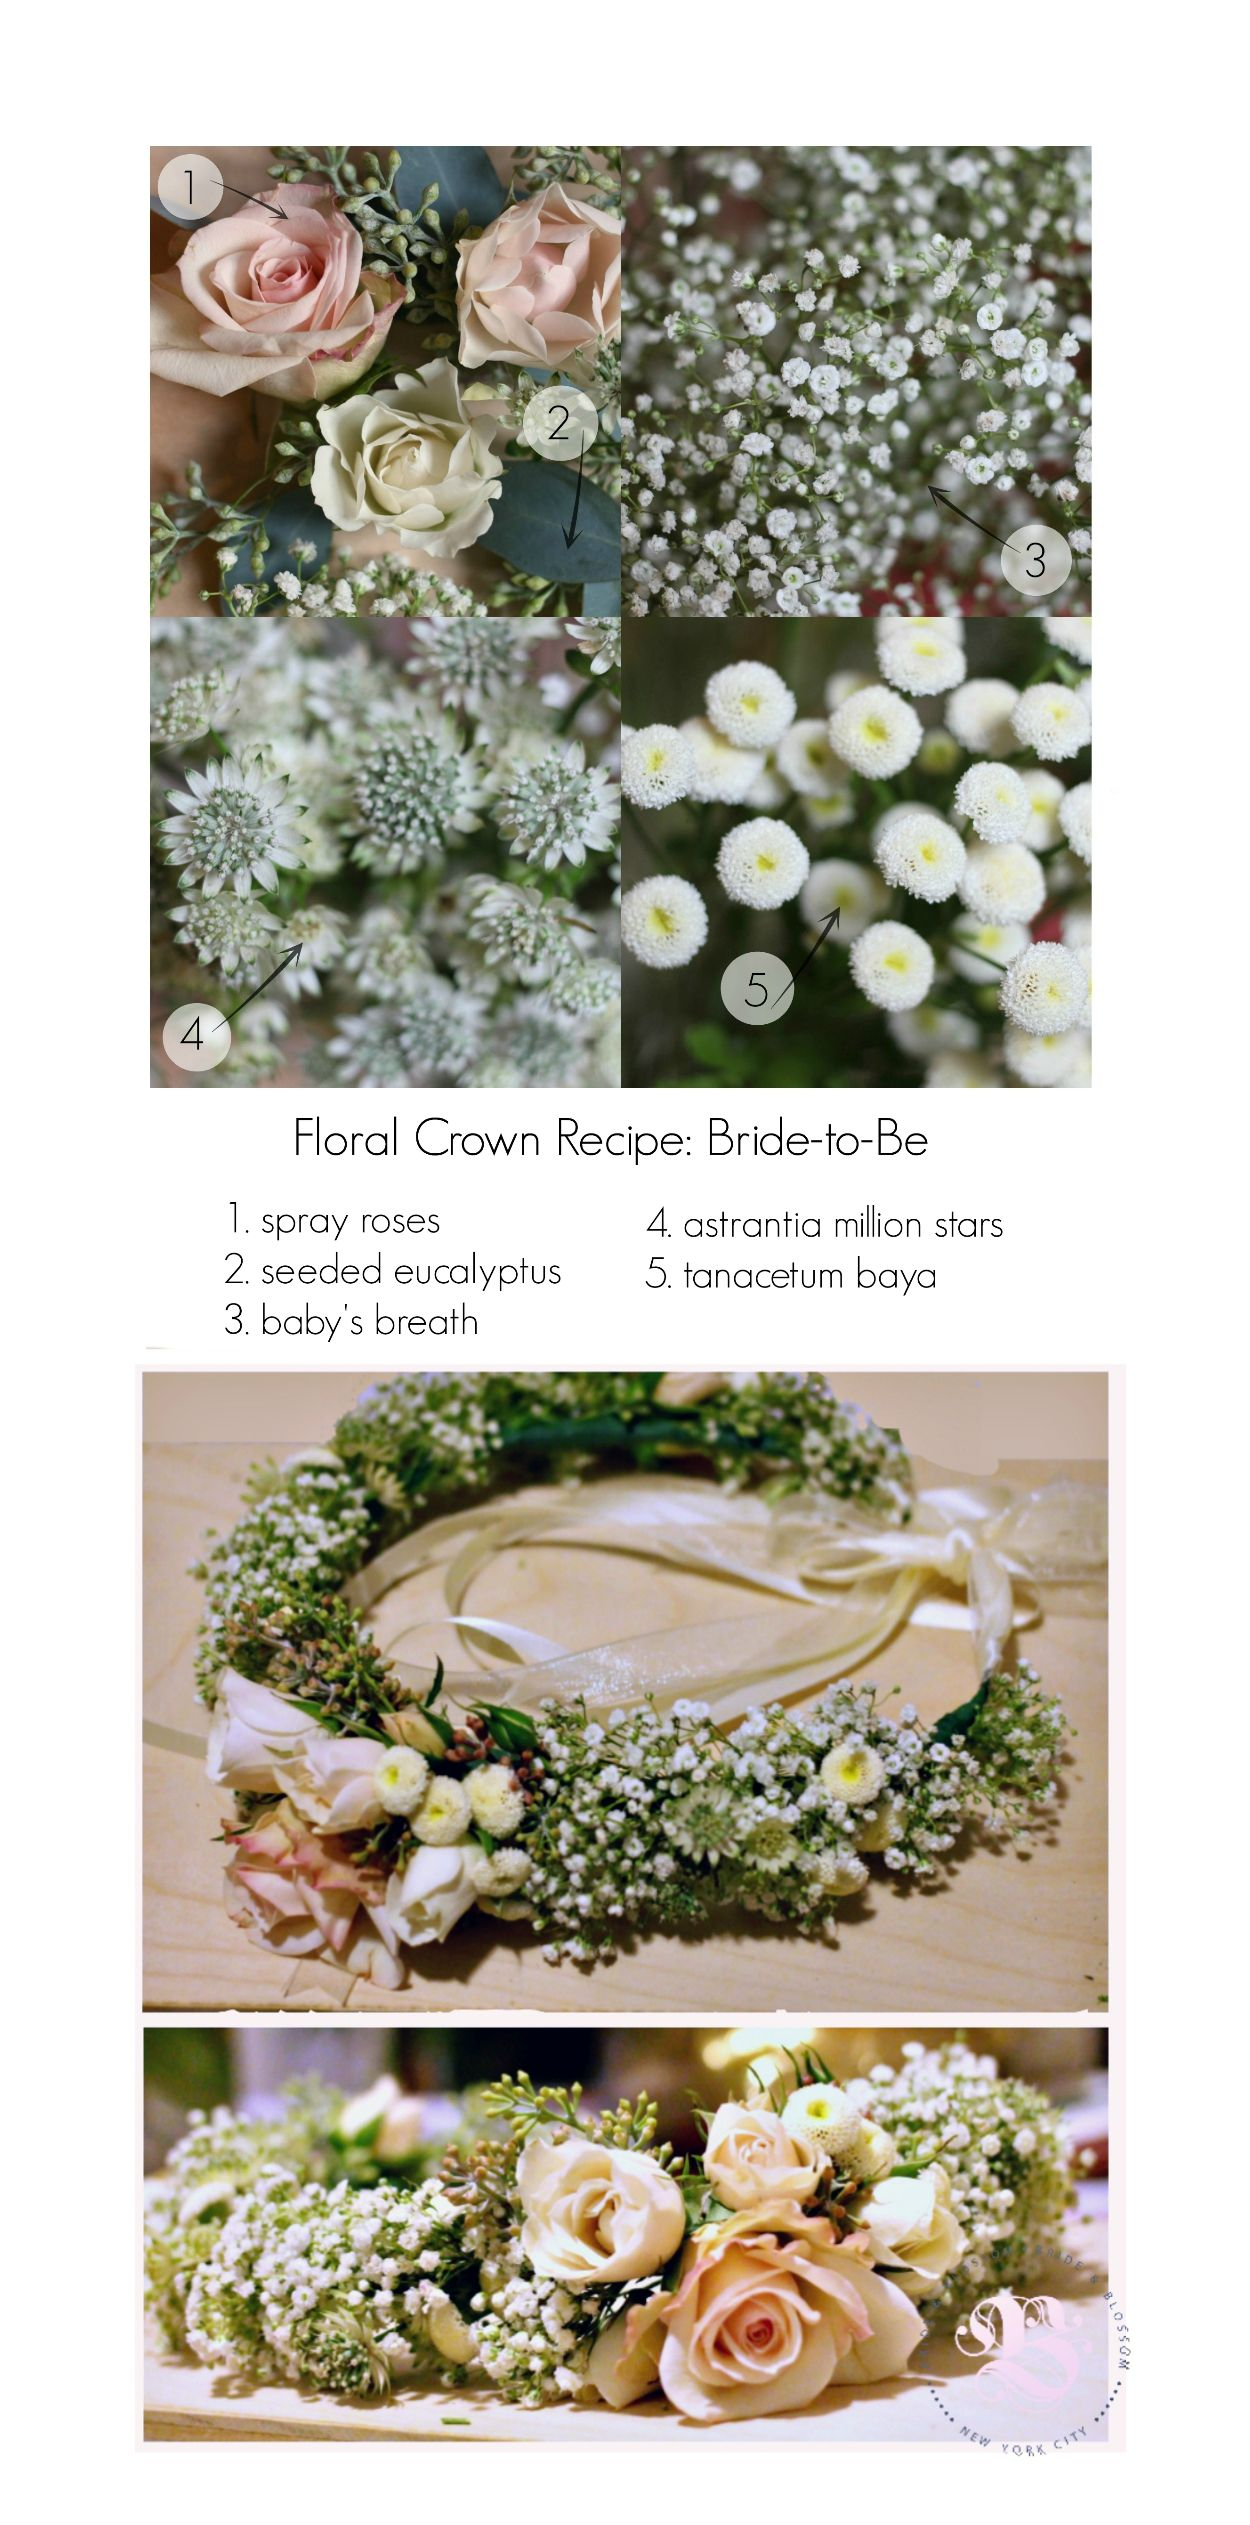 Floral Crown Recipe for an Engagement Photo Shoot | Light pink spray roses, ethereal baby's breath, cool-toned seeded eucalyptus, and tiny wildflowers with intricate, ivory petals, poetically-named astrantia million stars. #floralcrown #weddinghair